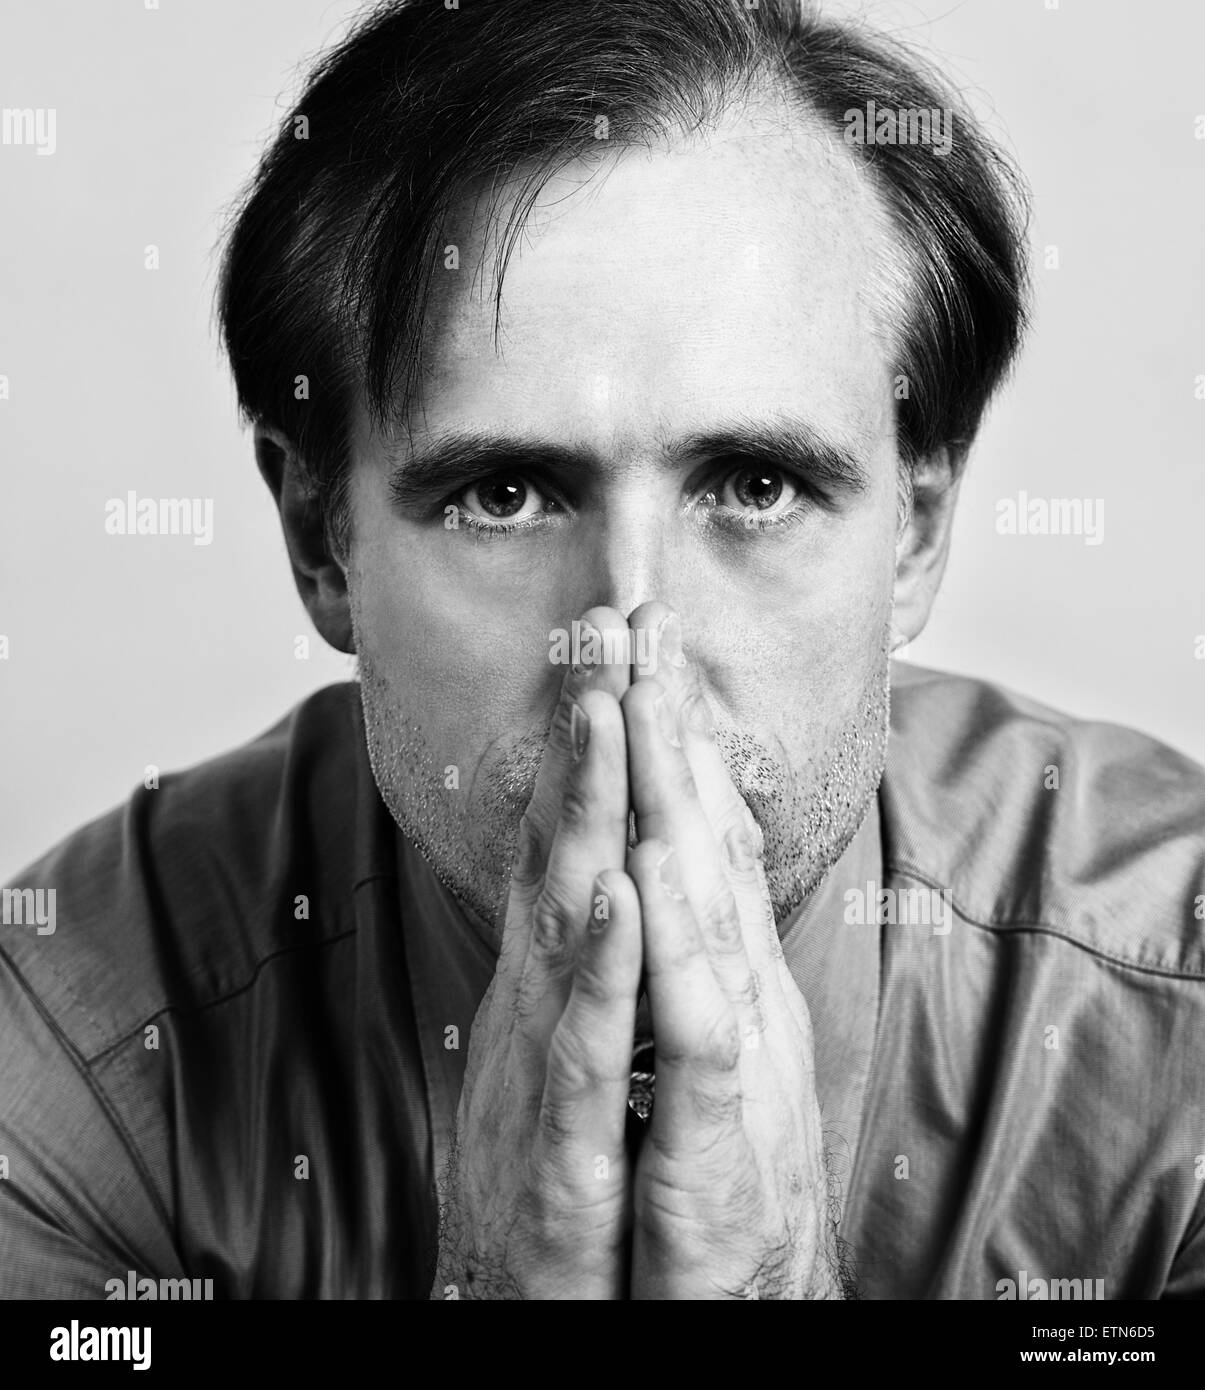 Close-up portrait of a mid adult man with his hands in front of his mouth - Stock Image